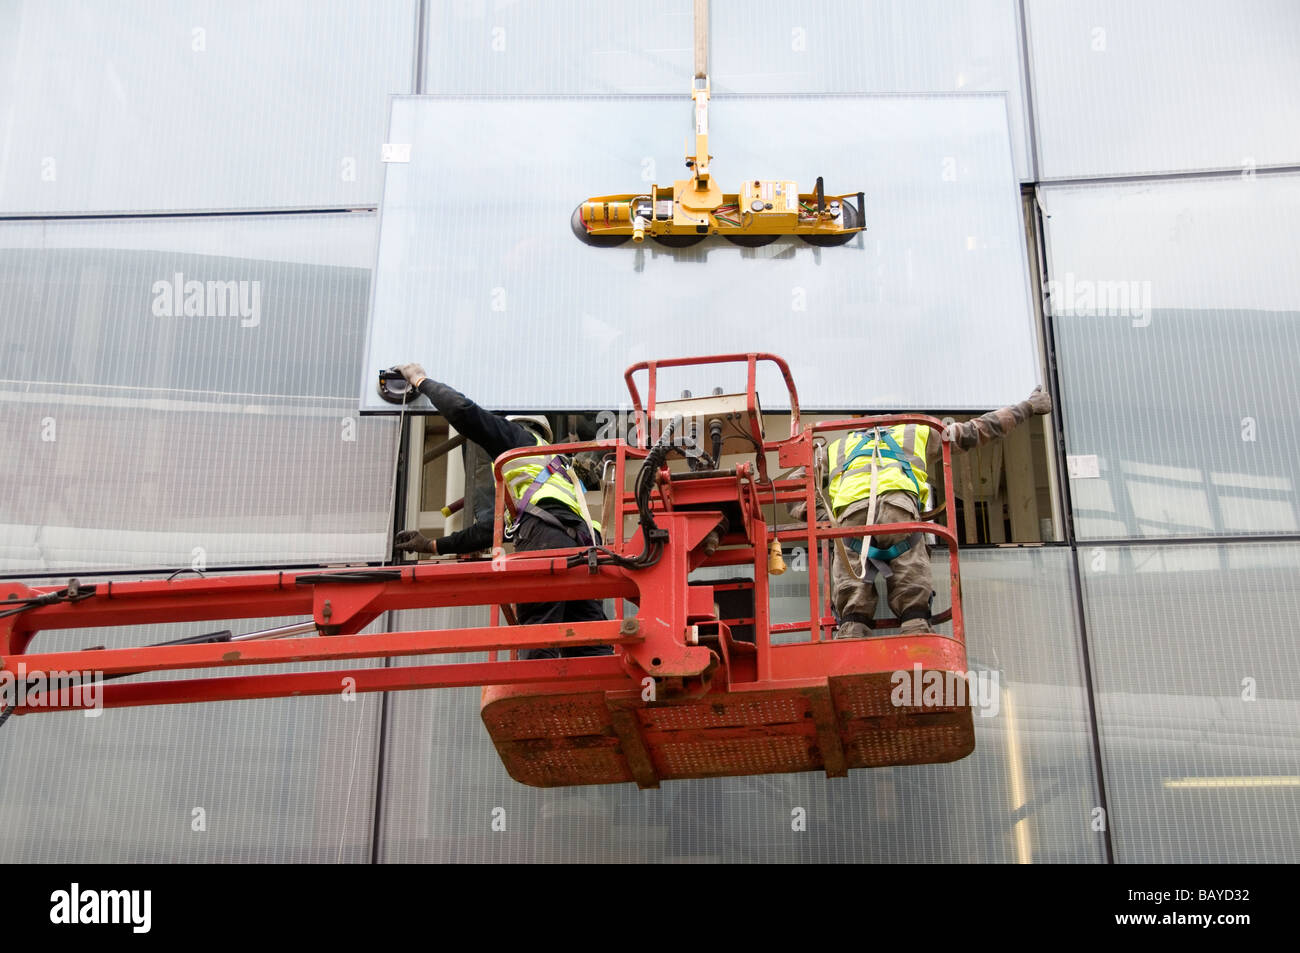 London Hackney May 2009 Installing large windows in new council building Stock Photo